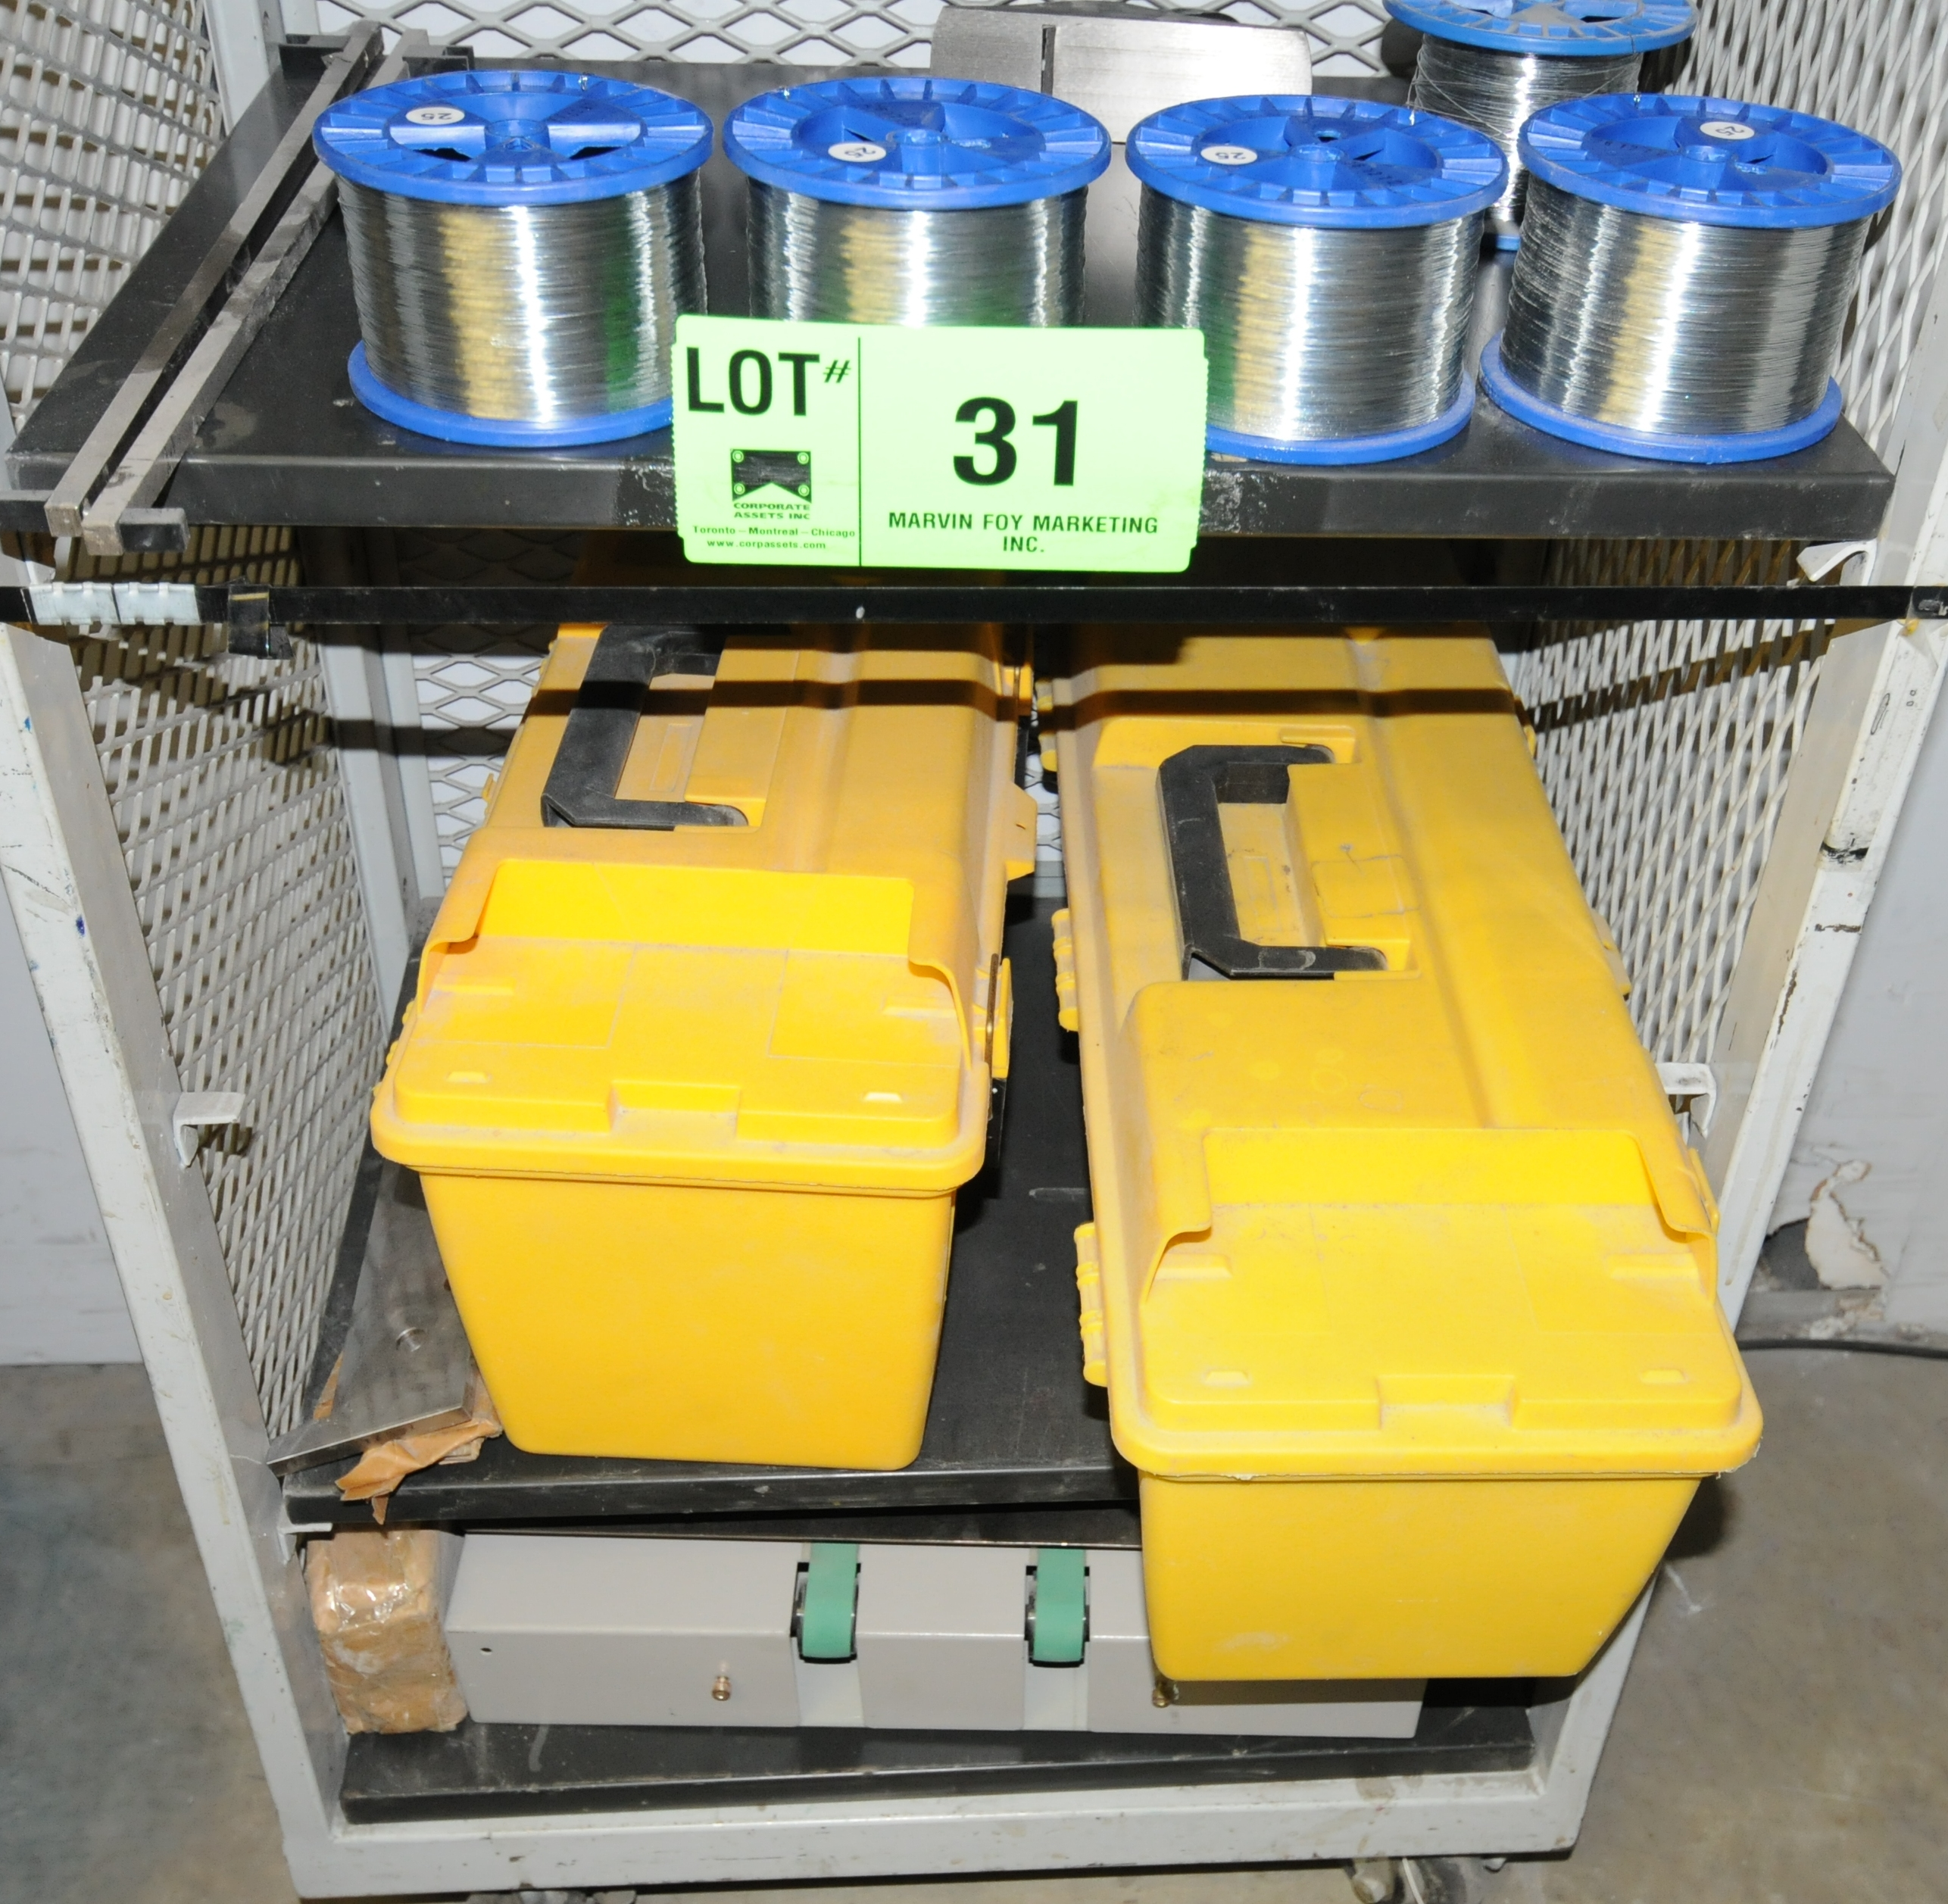 Lot 31 - LOT/ CART WITH BOOKLET MAKER TOOLING AND WIRE